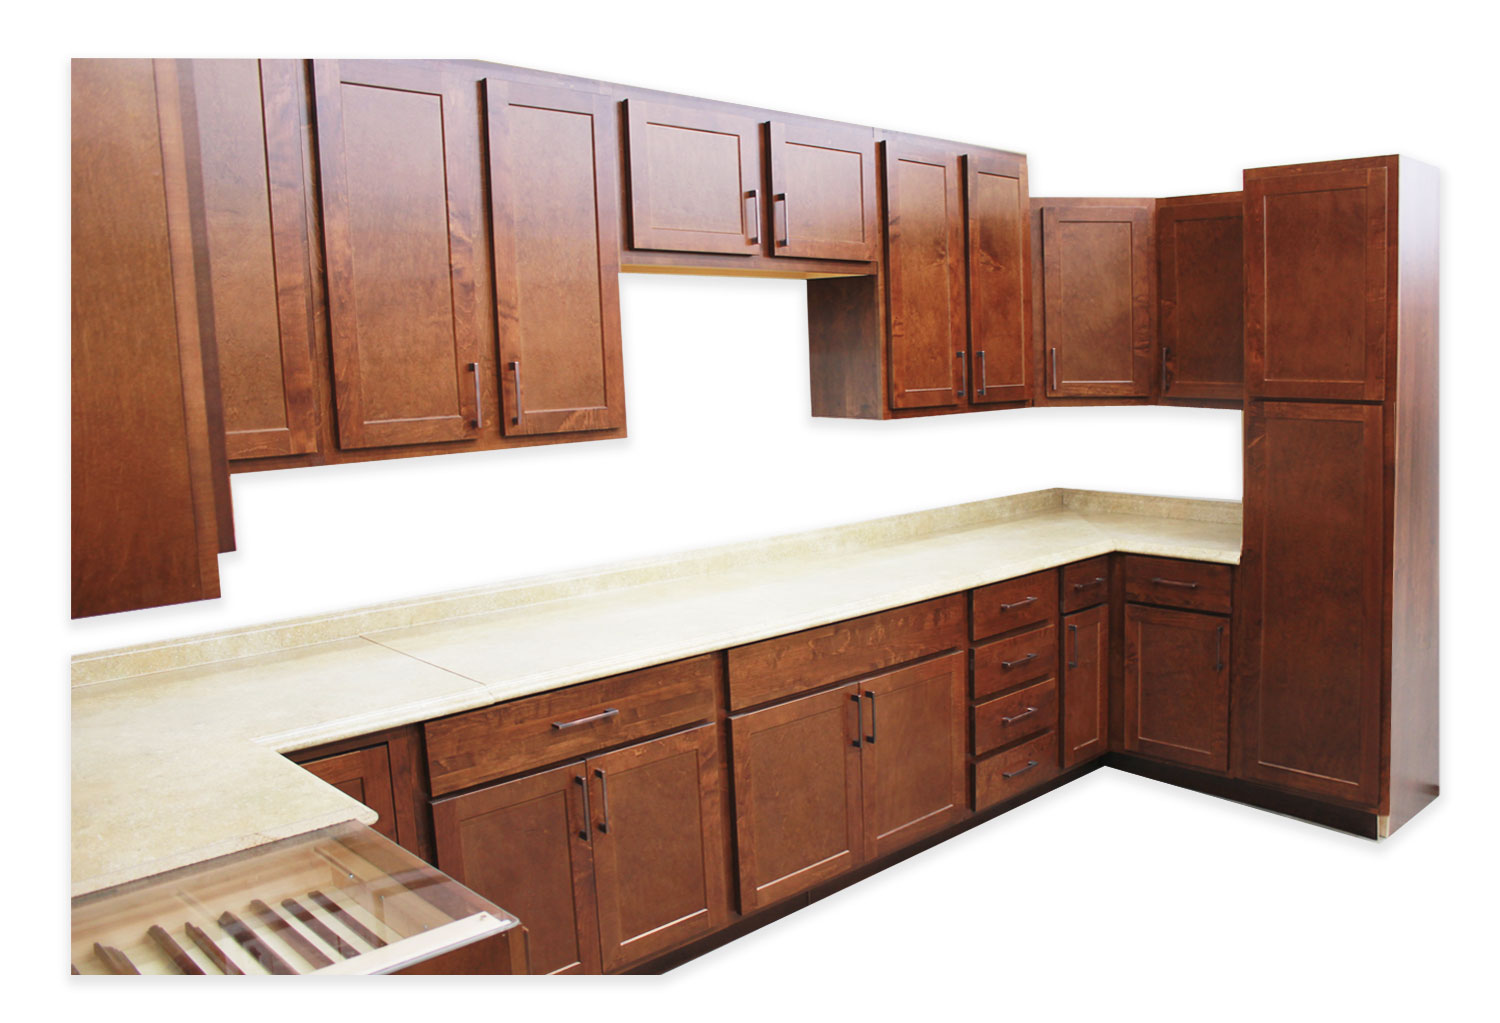 auburn_maple_kitchen_cabinets-1.jpg